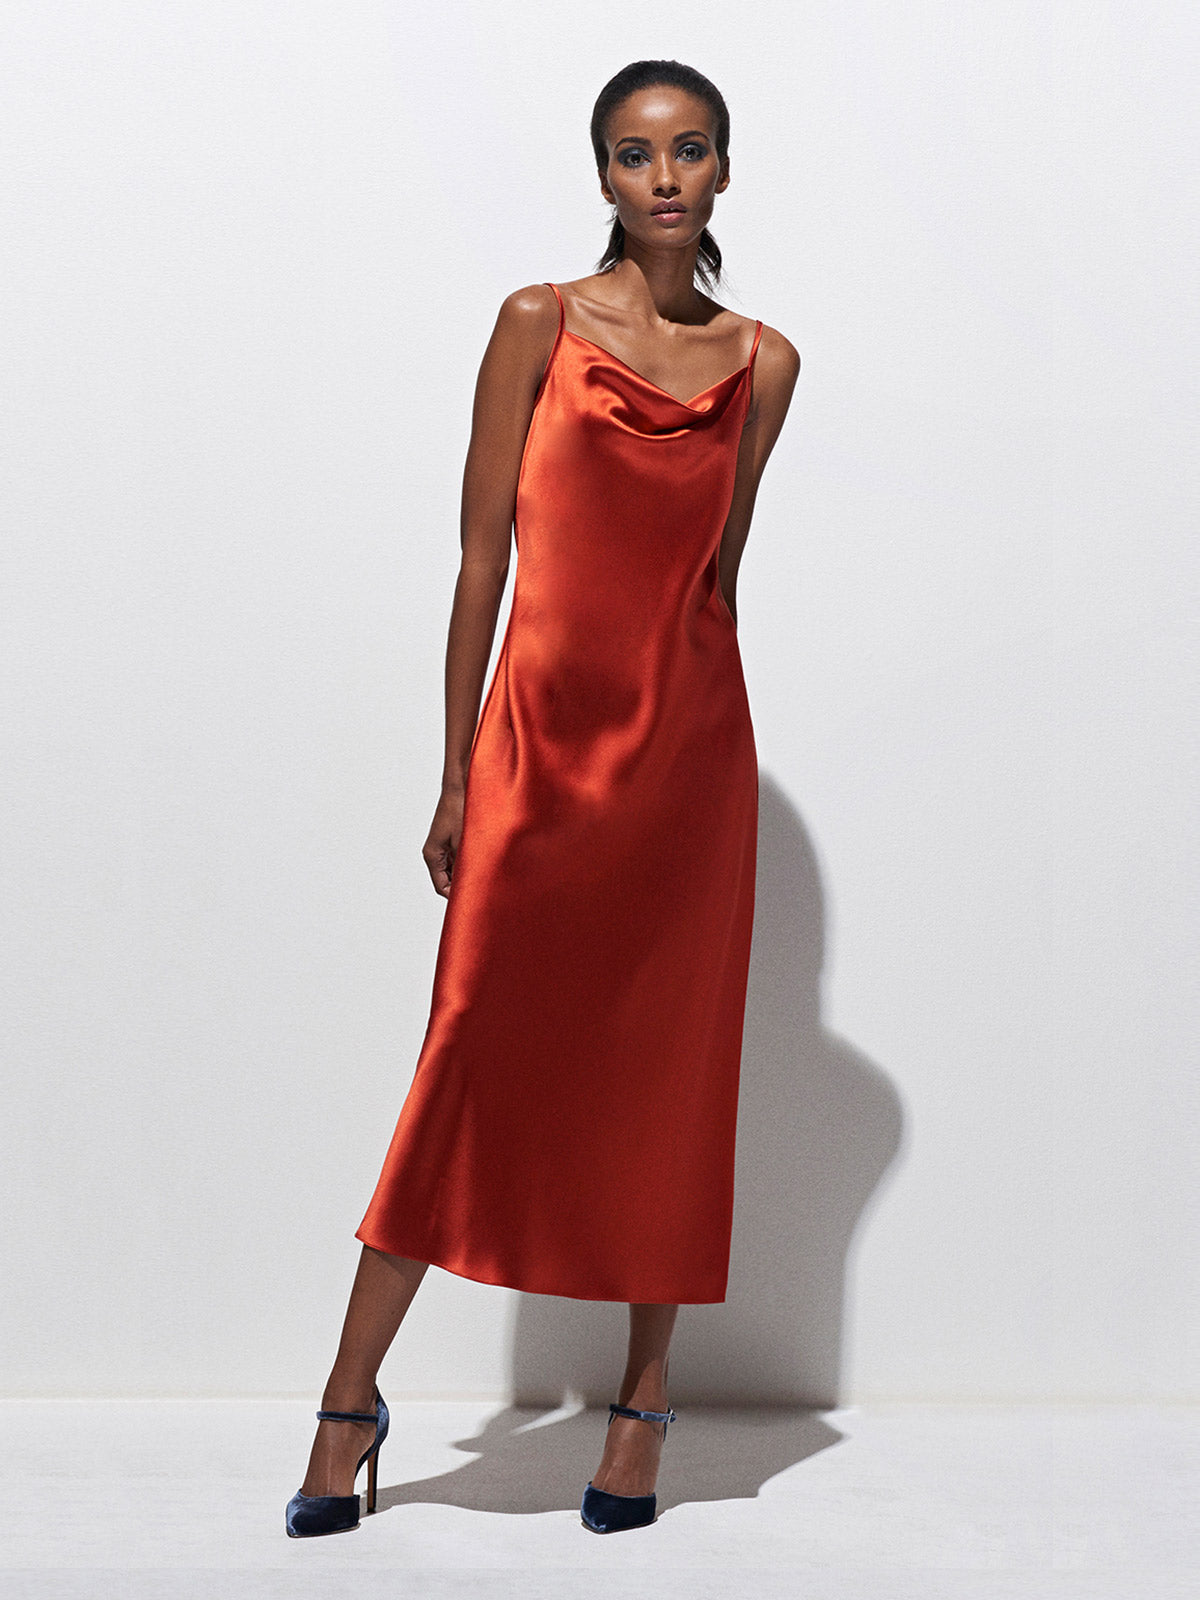 Draped Spaghetti Strap Midi Dress | Marine Draped Spaghetti Strap Midi Dress | Marine